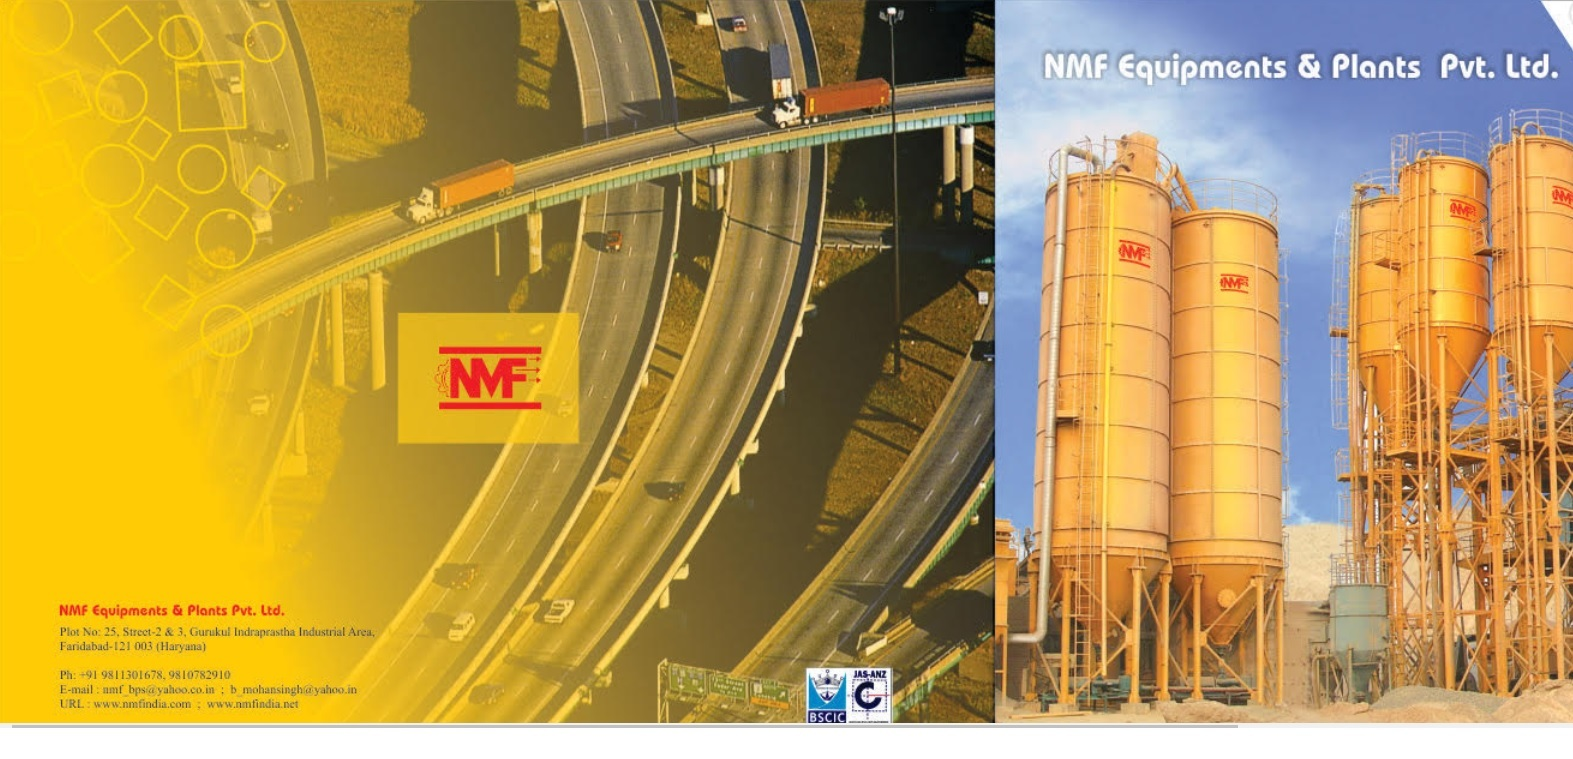 NMF Equipments And Plants Private Limited - Manufacturer of